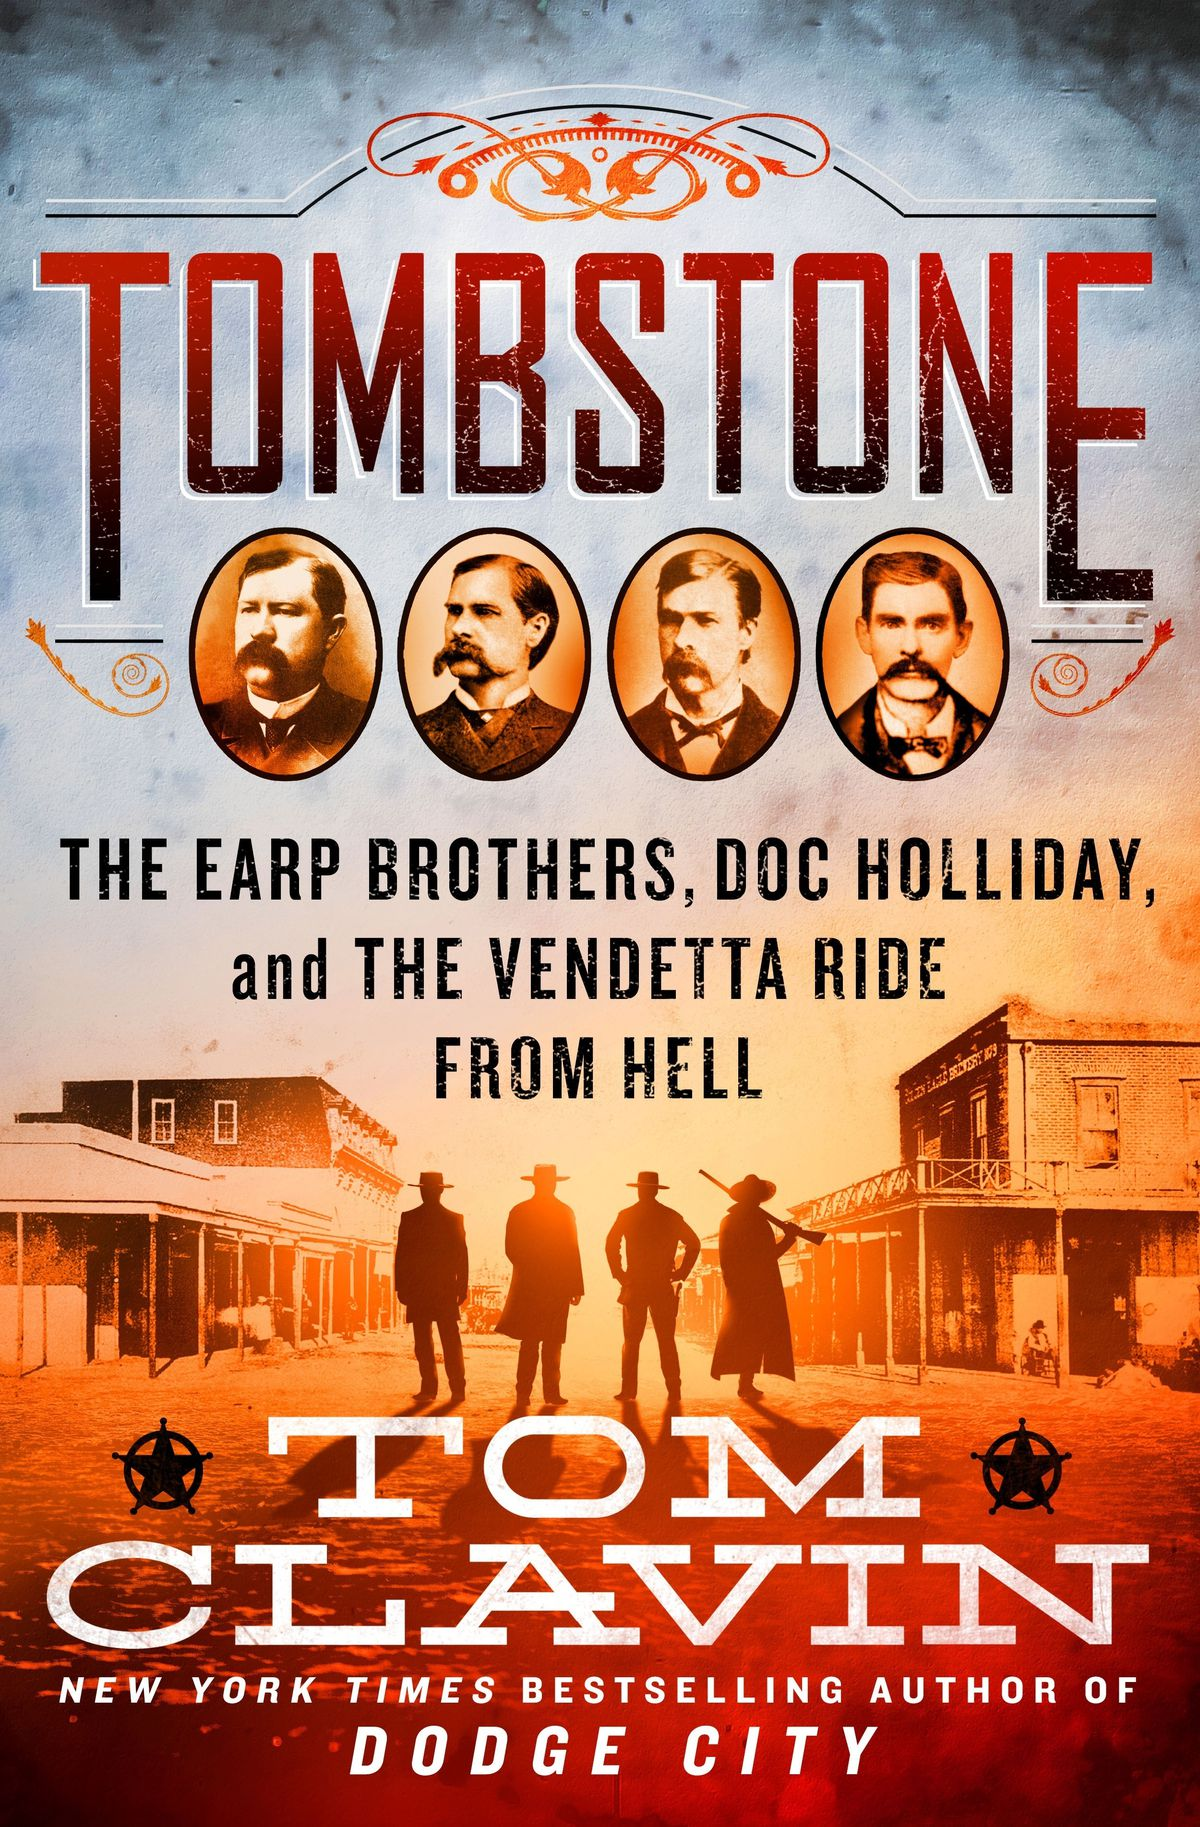 """""""Tombstone: The Earp Brothers, Doc Holliday, and the Vendetta Ride From Hell"""" by Tom Clavin."""